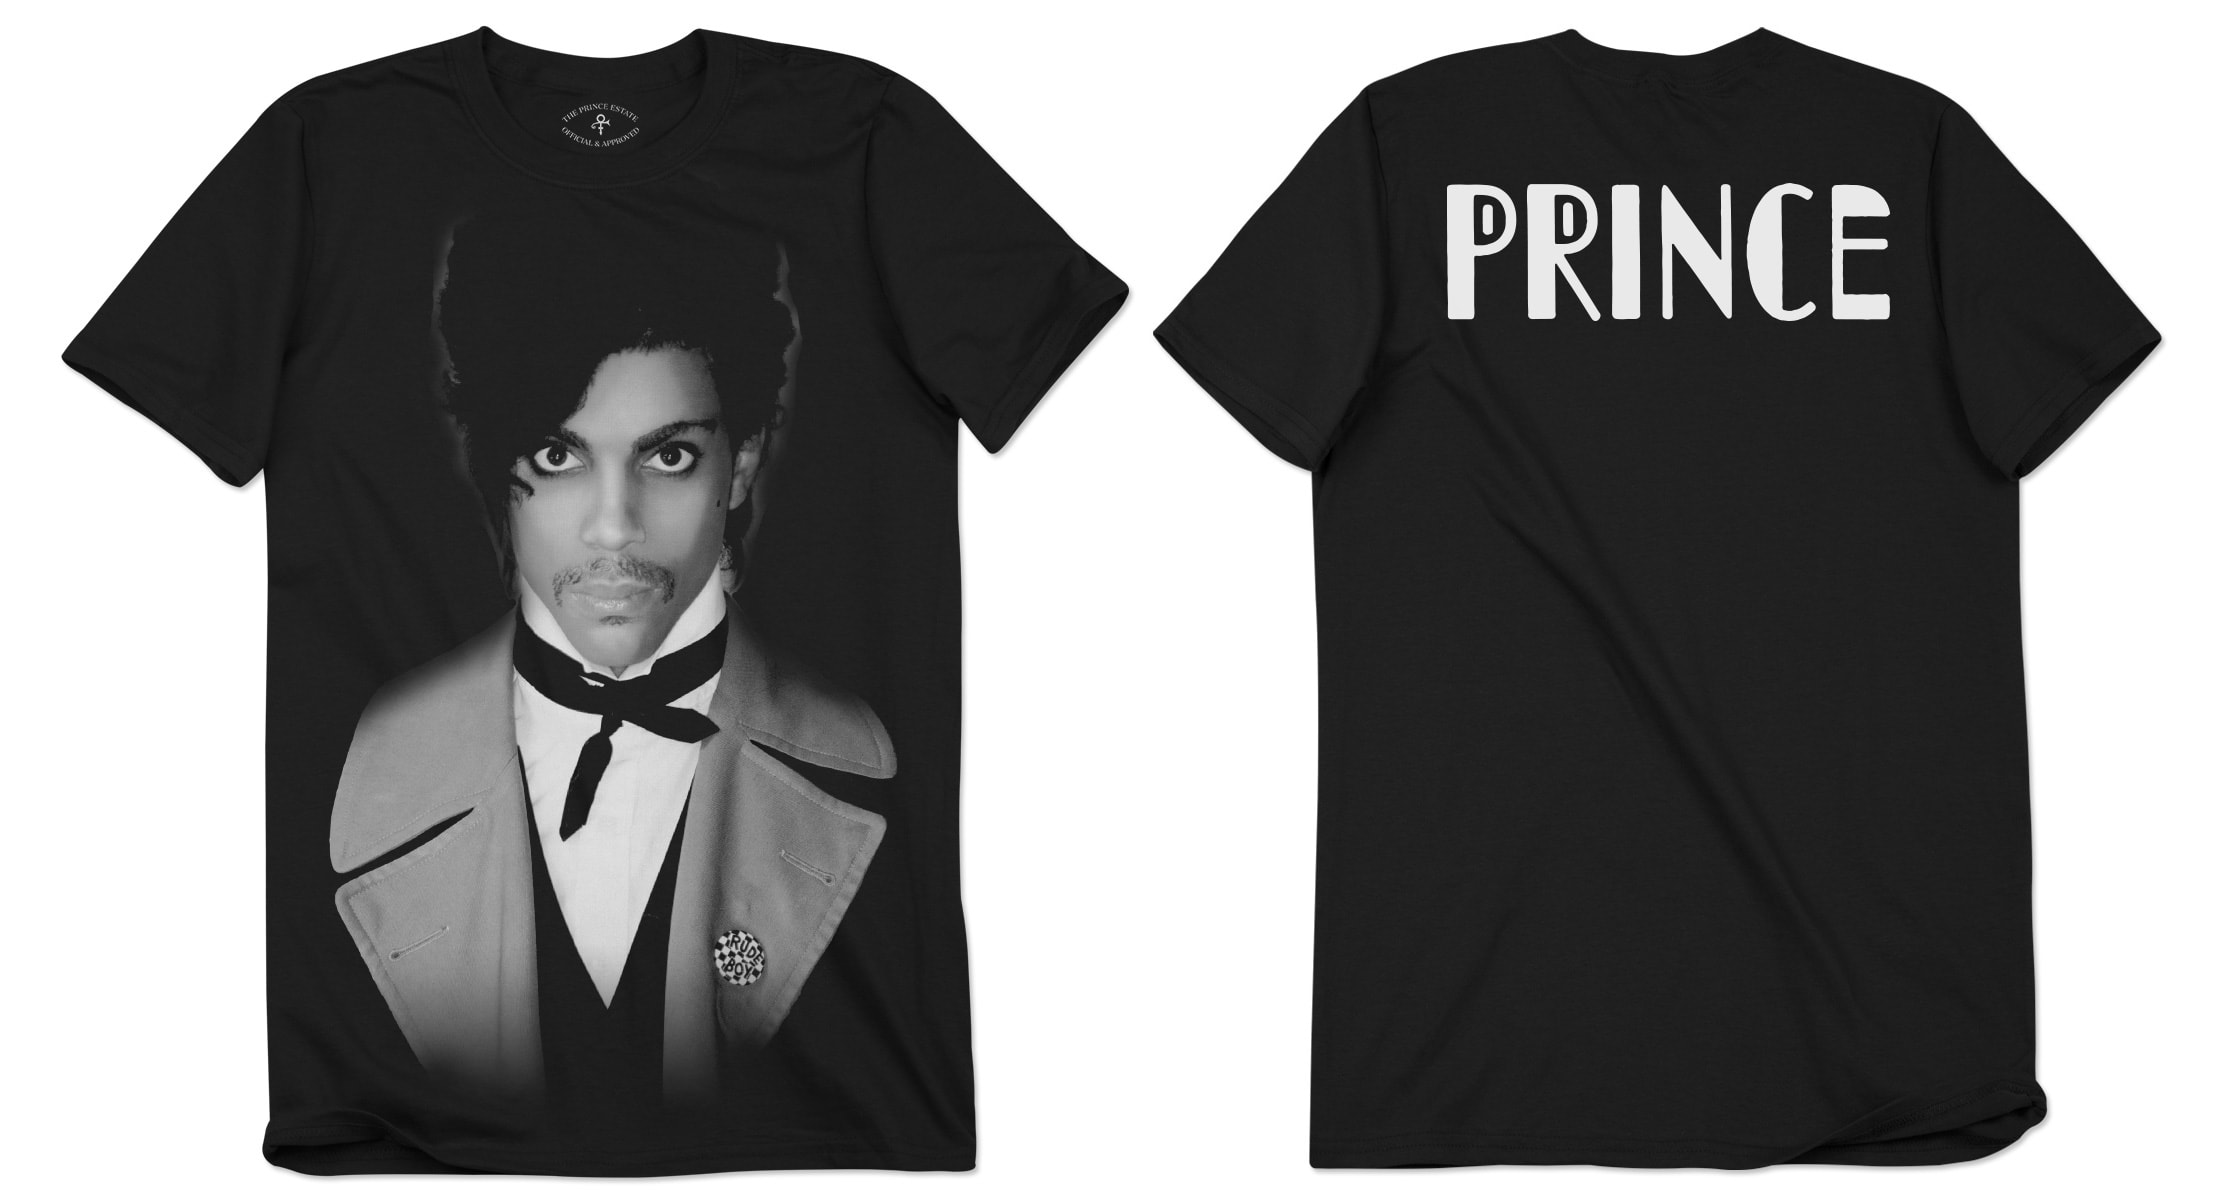 Official Prince Merch Is Now Available Through Limited